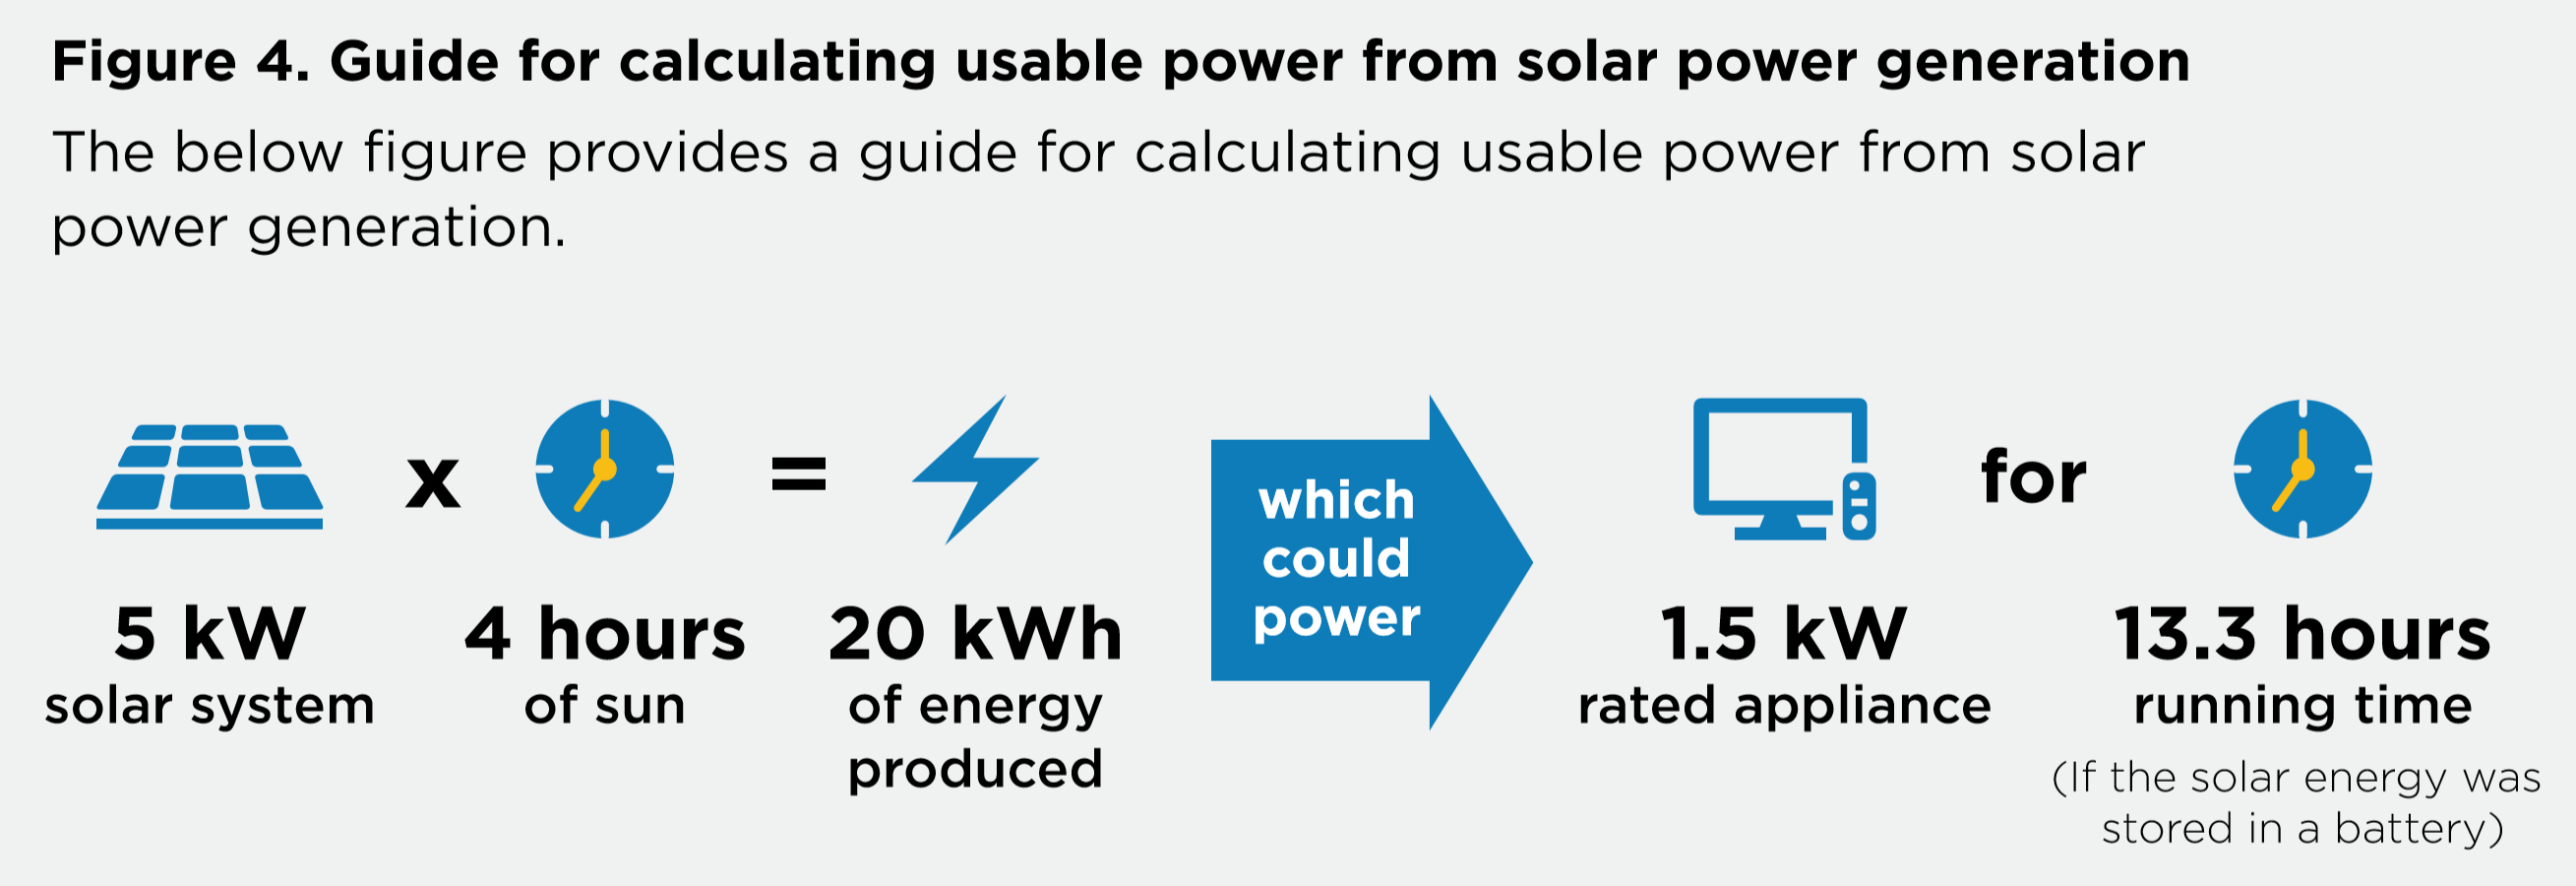 calculating usable power from solar